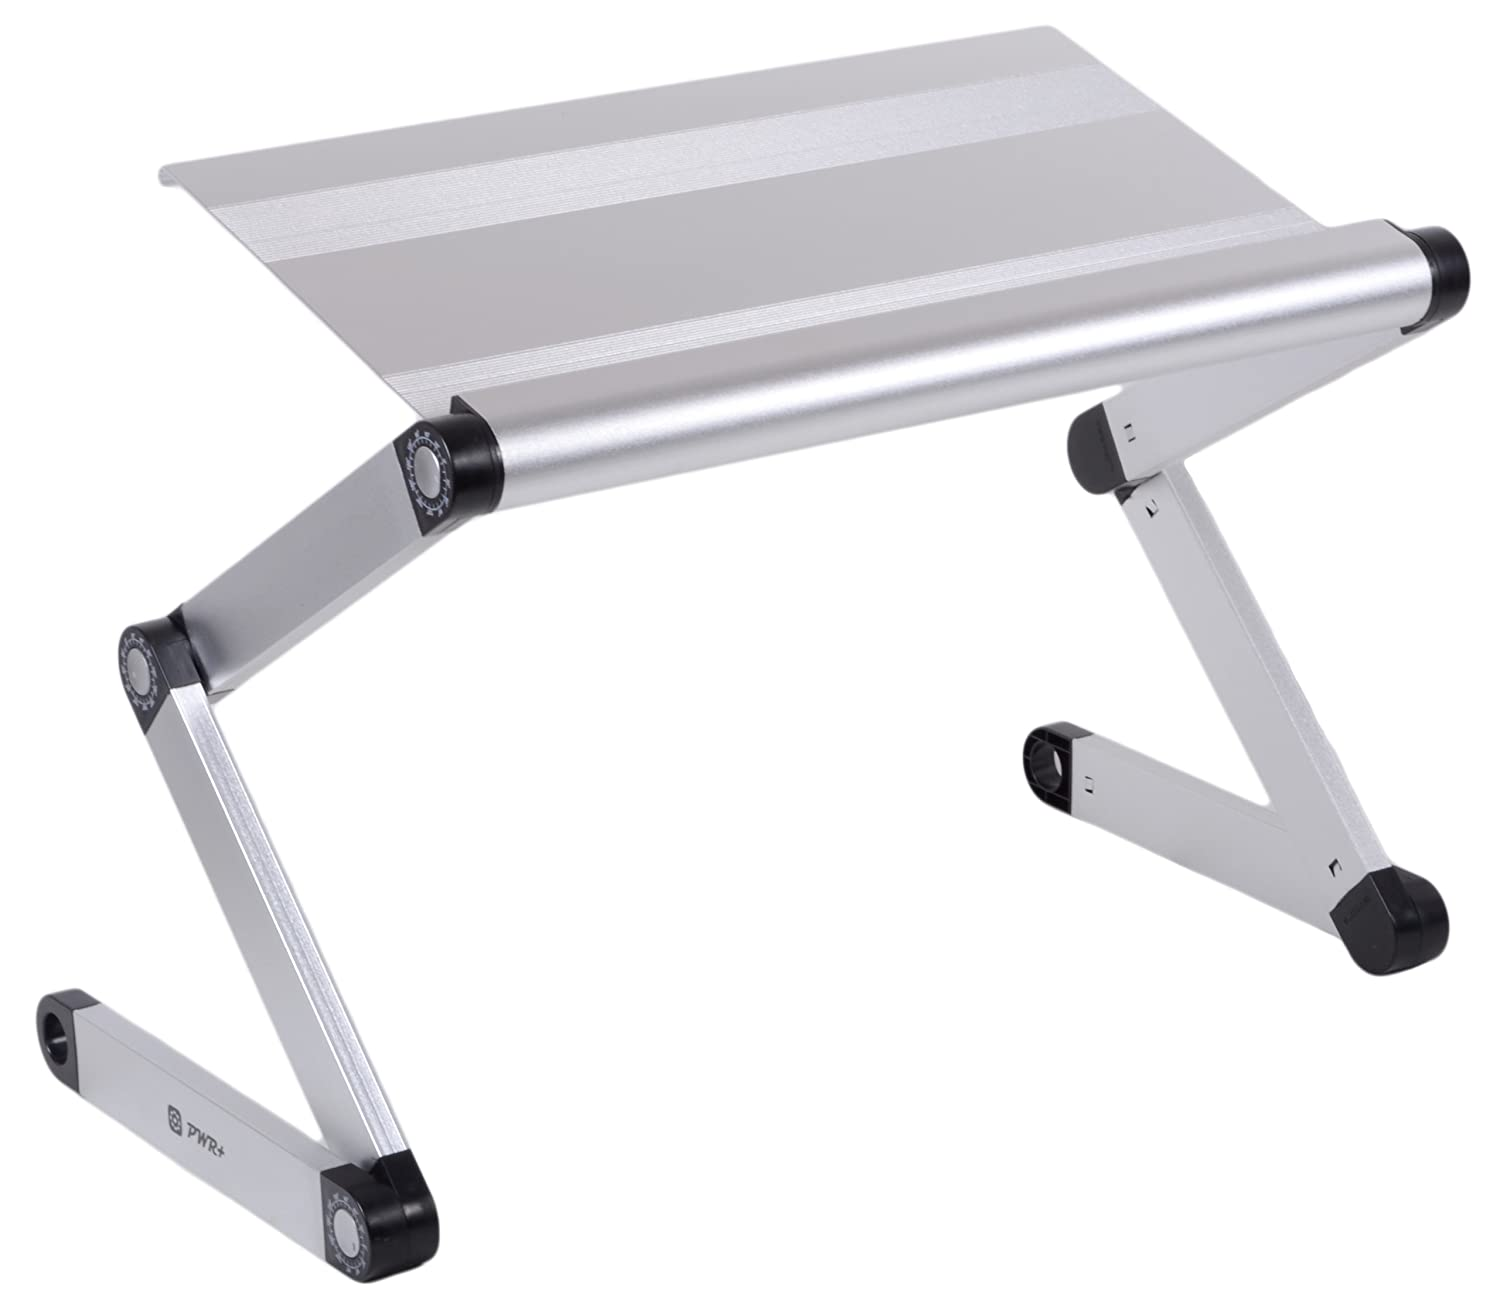 Pwr+ Lightweight Durable Portable Folding Laptop Notebook Book Ultrabook Tablet Pad Table Desk Tray Stand - Fully Adjustable Angle at Sears.com